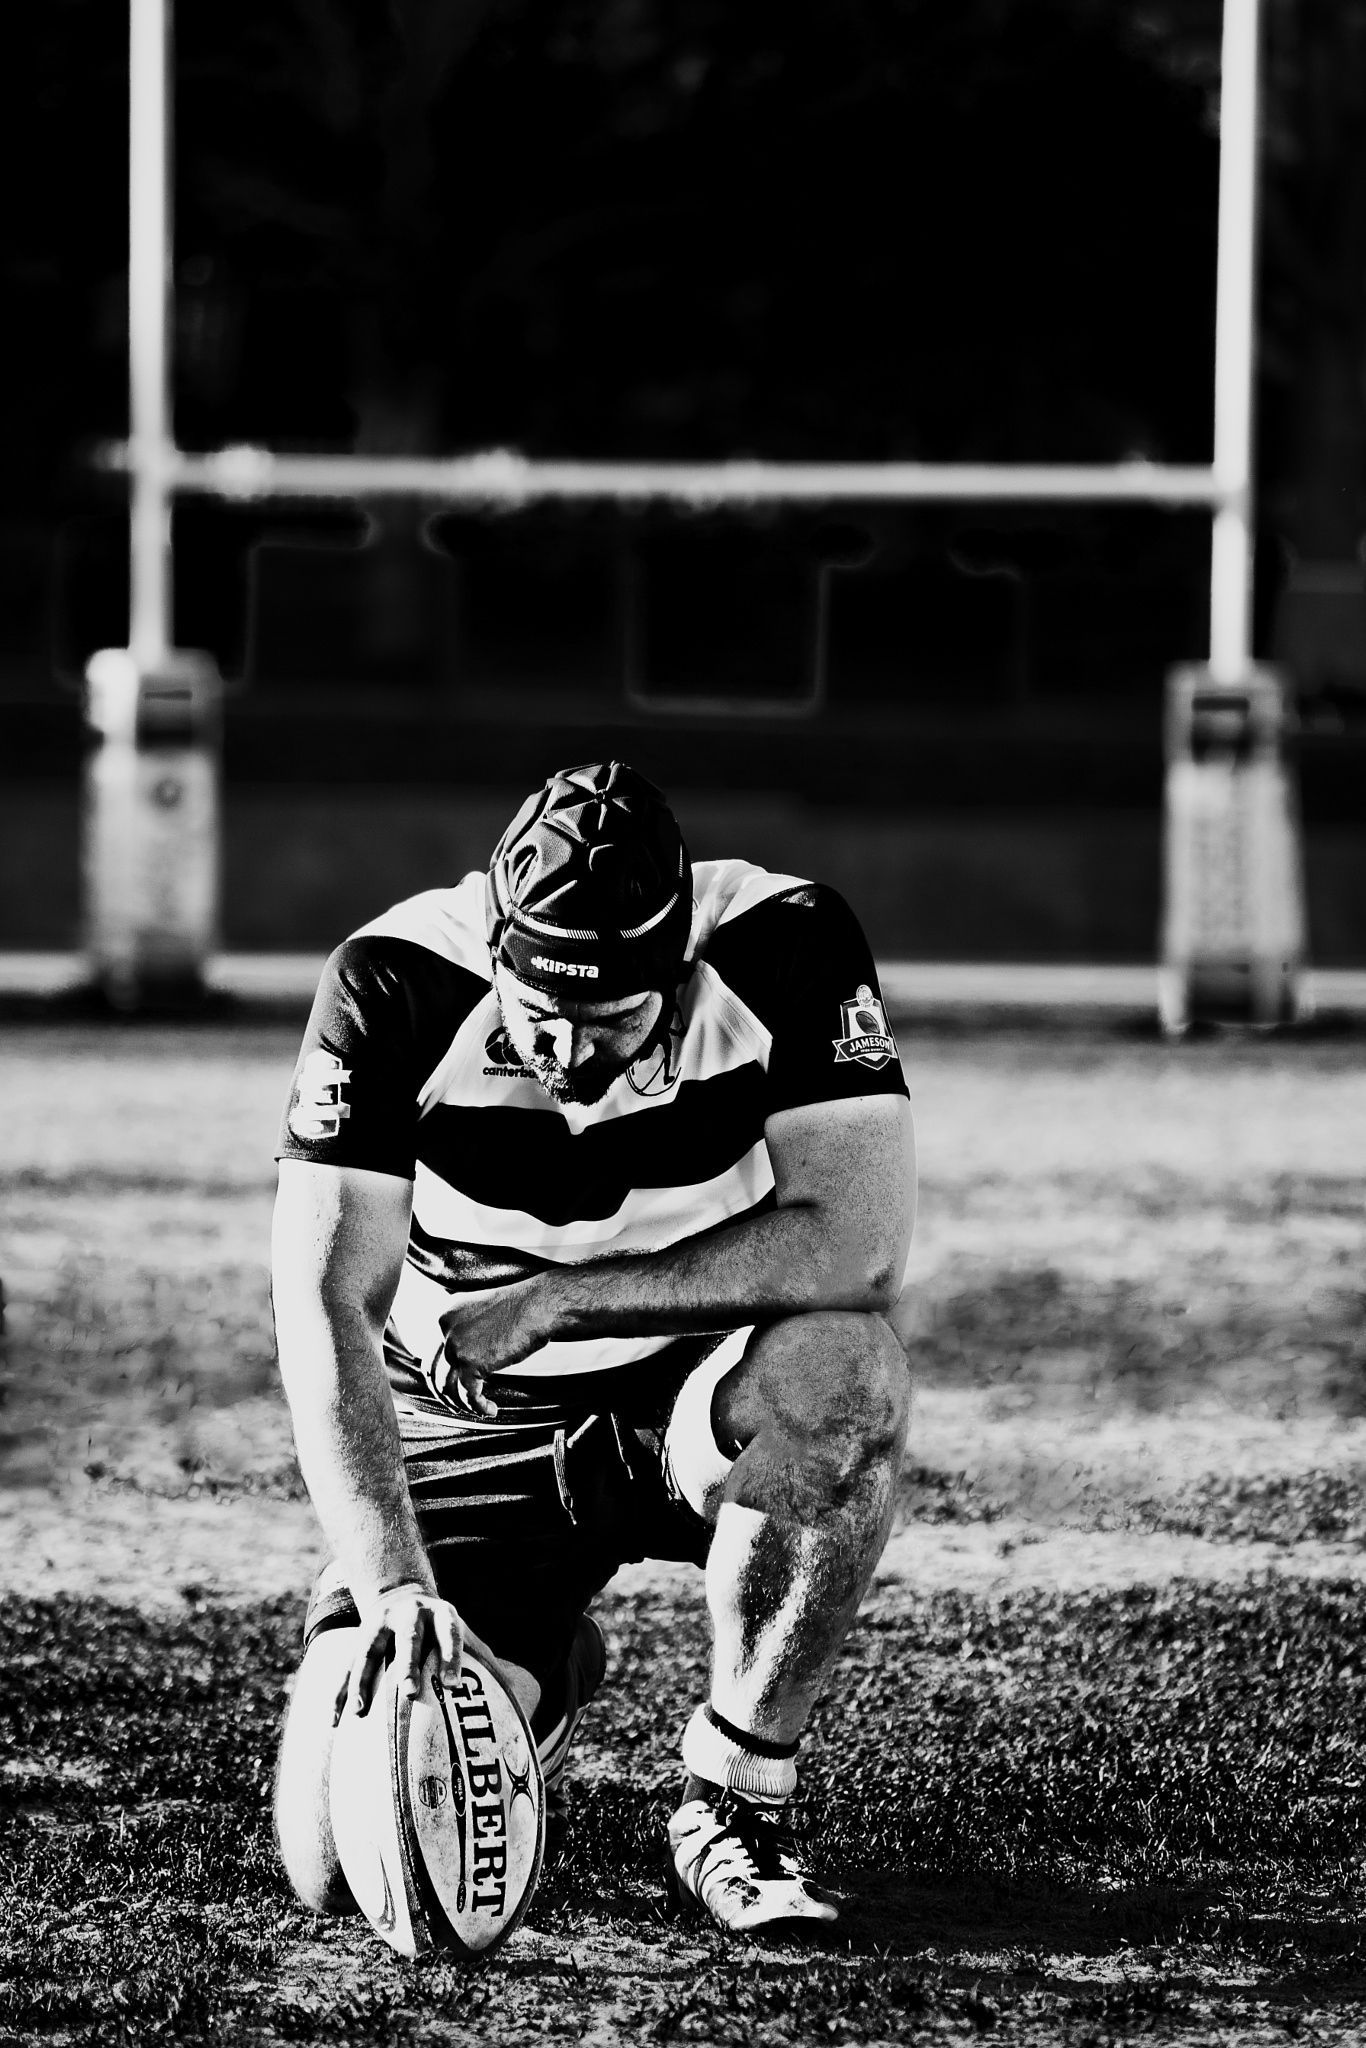 The rugby player … Rugby sport, Rugby players, Rugby workout